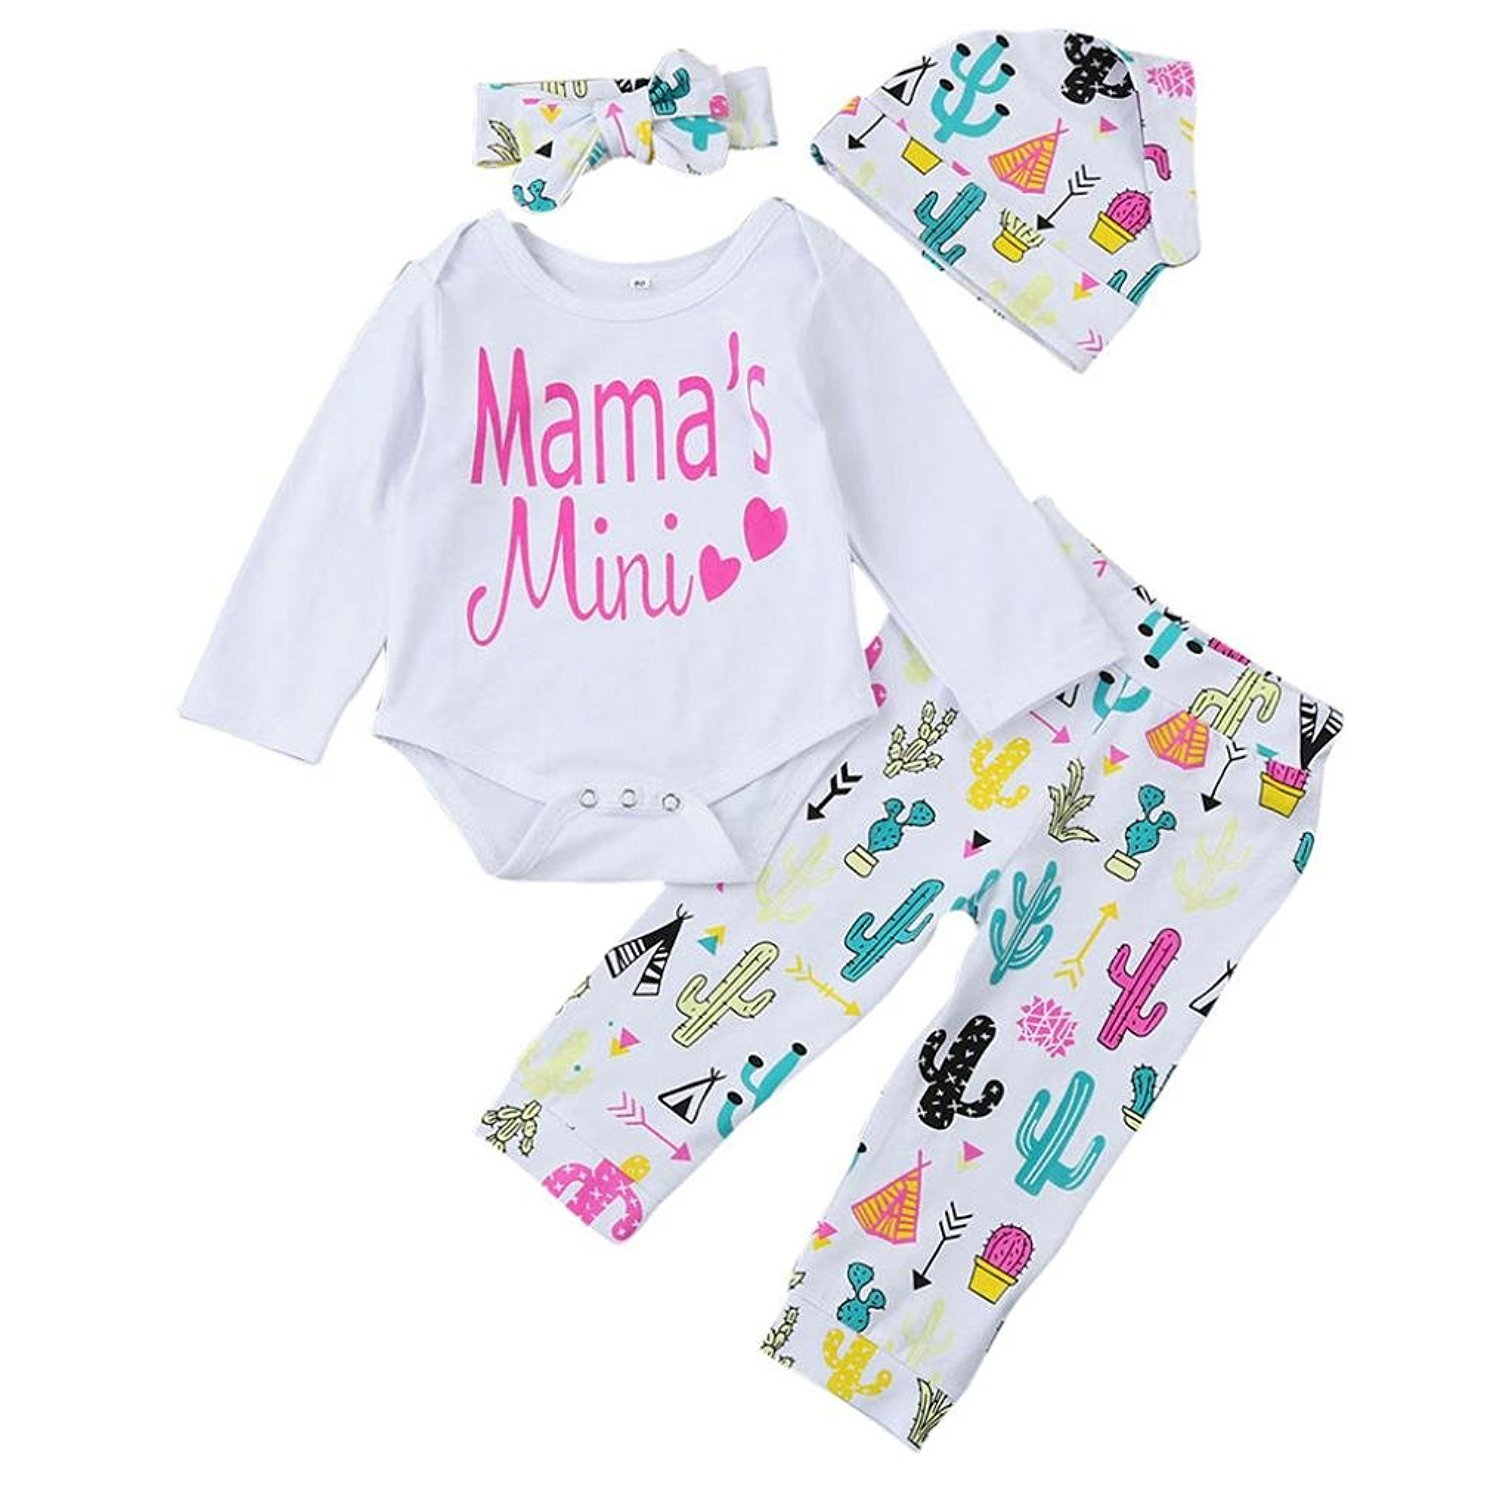 Considerate Baby Girls Clothes Bungle Up To 1 Month Clothes Newborn Baby 3 Month Clothing, Shoes & Accessories